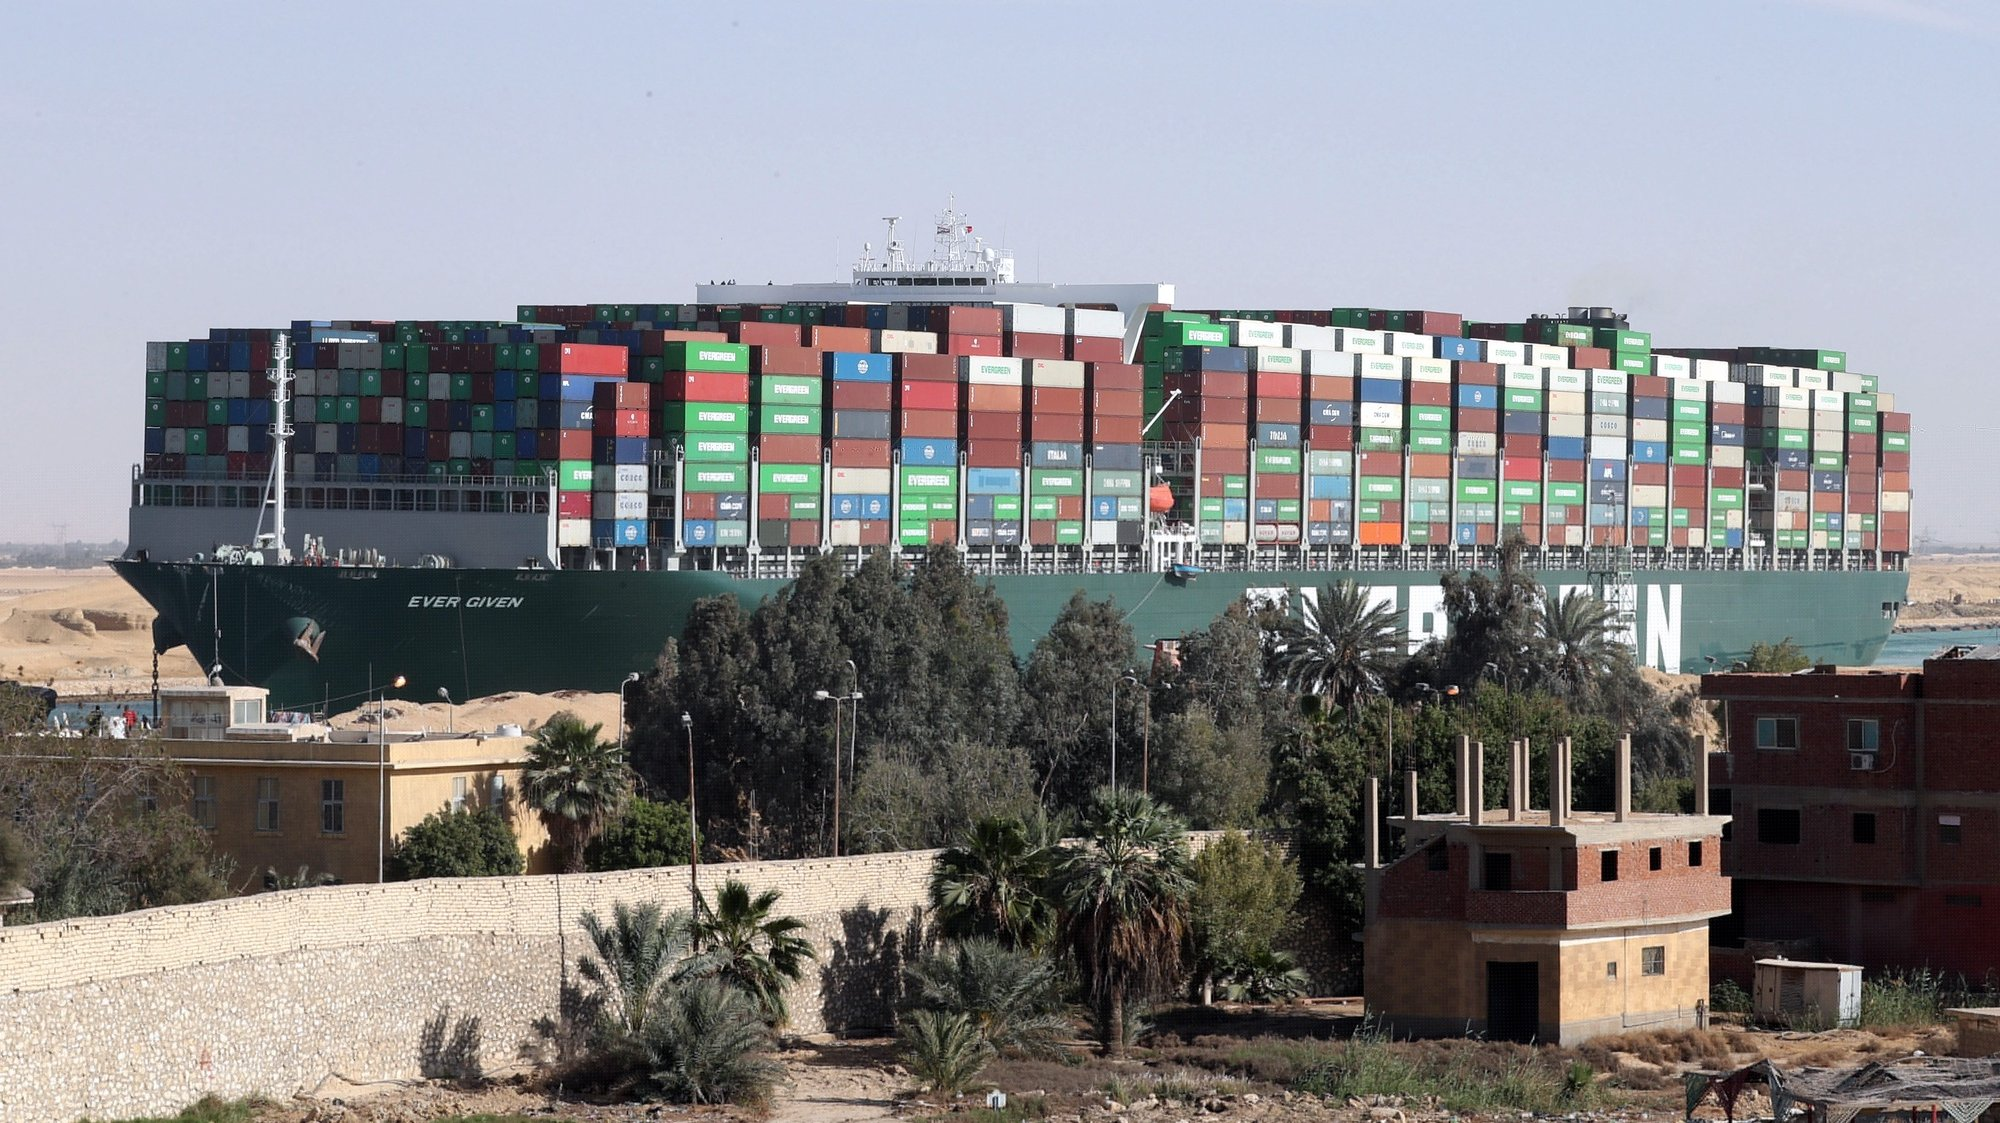 epa09134869 (FILE) - The container ship 'Ever Given' is moving in the Suez Canal, Egypt, 29 March 2021 (reissued 14 April 2021). The Suez Canal Authority (SCA) has seized the ship over an unsettled claim of over 900 Million US dollars for compensation, the Ever Given's insurer UK Club said. The Ever Given ran aground in the Suez Canal on 23 March, causing a huge traffic backlog of ships.  EPA/KHALED ELFIQI *** Local Caption *** 56794878